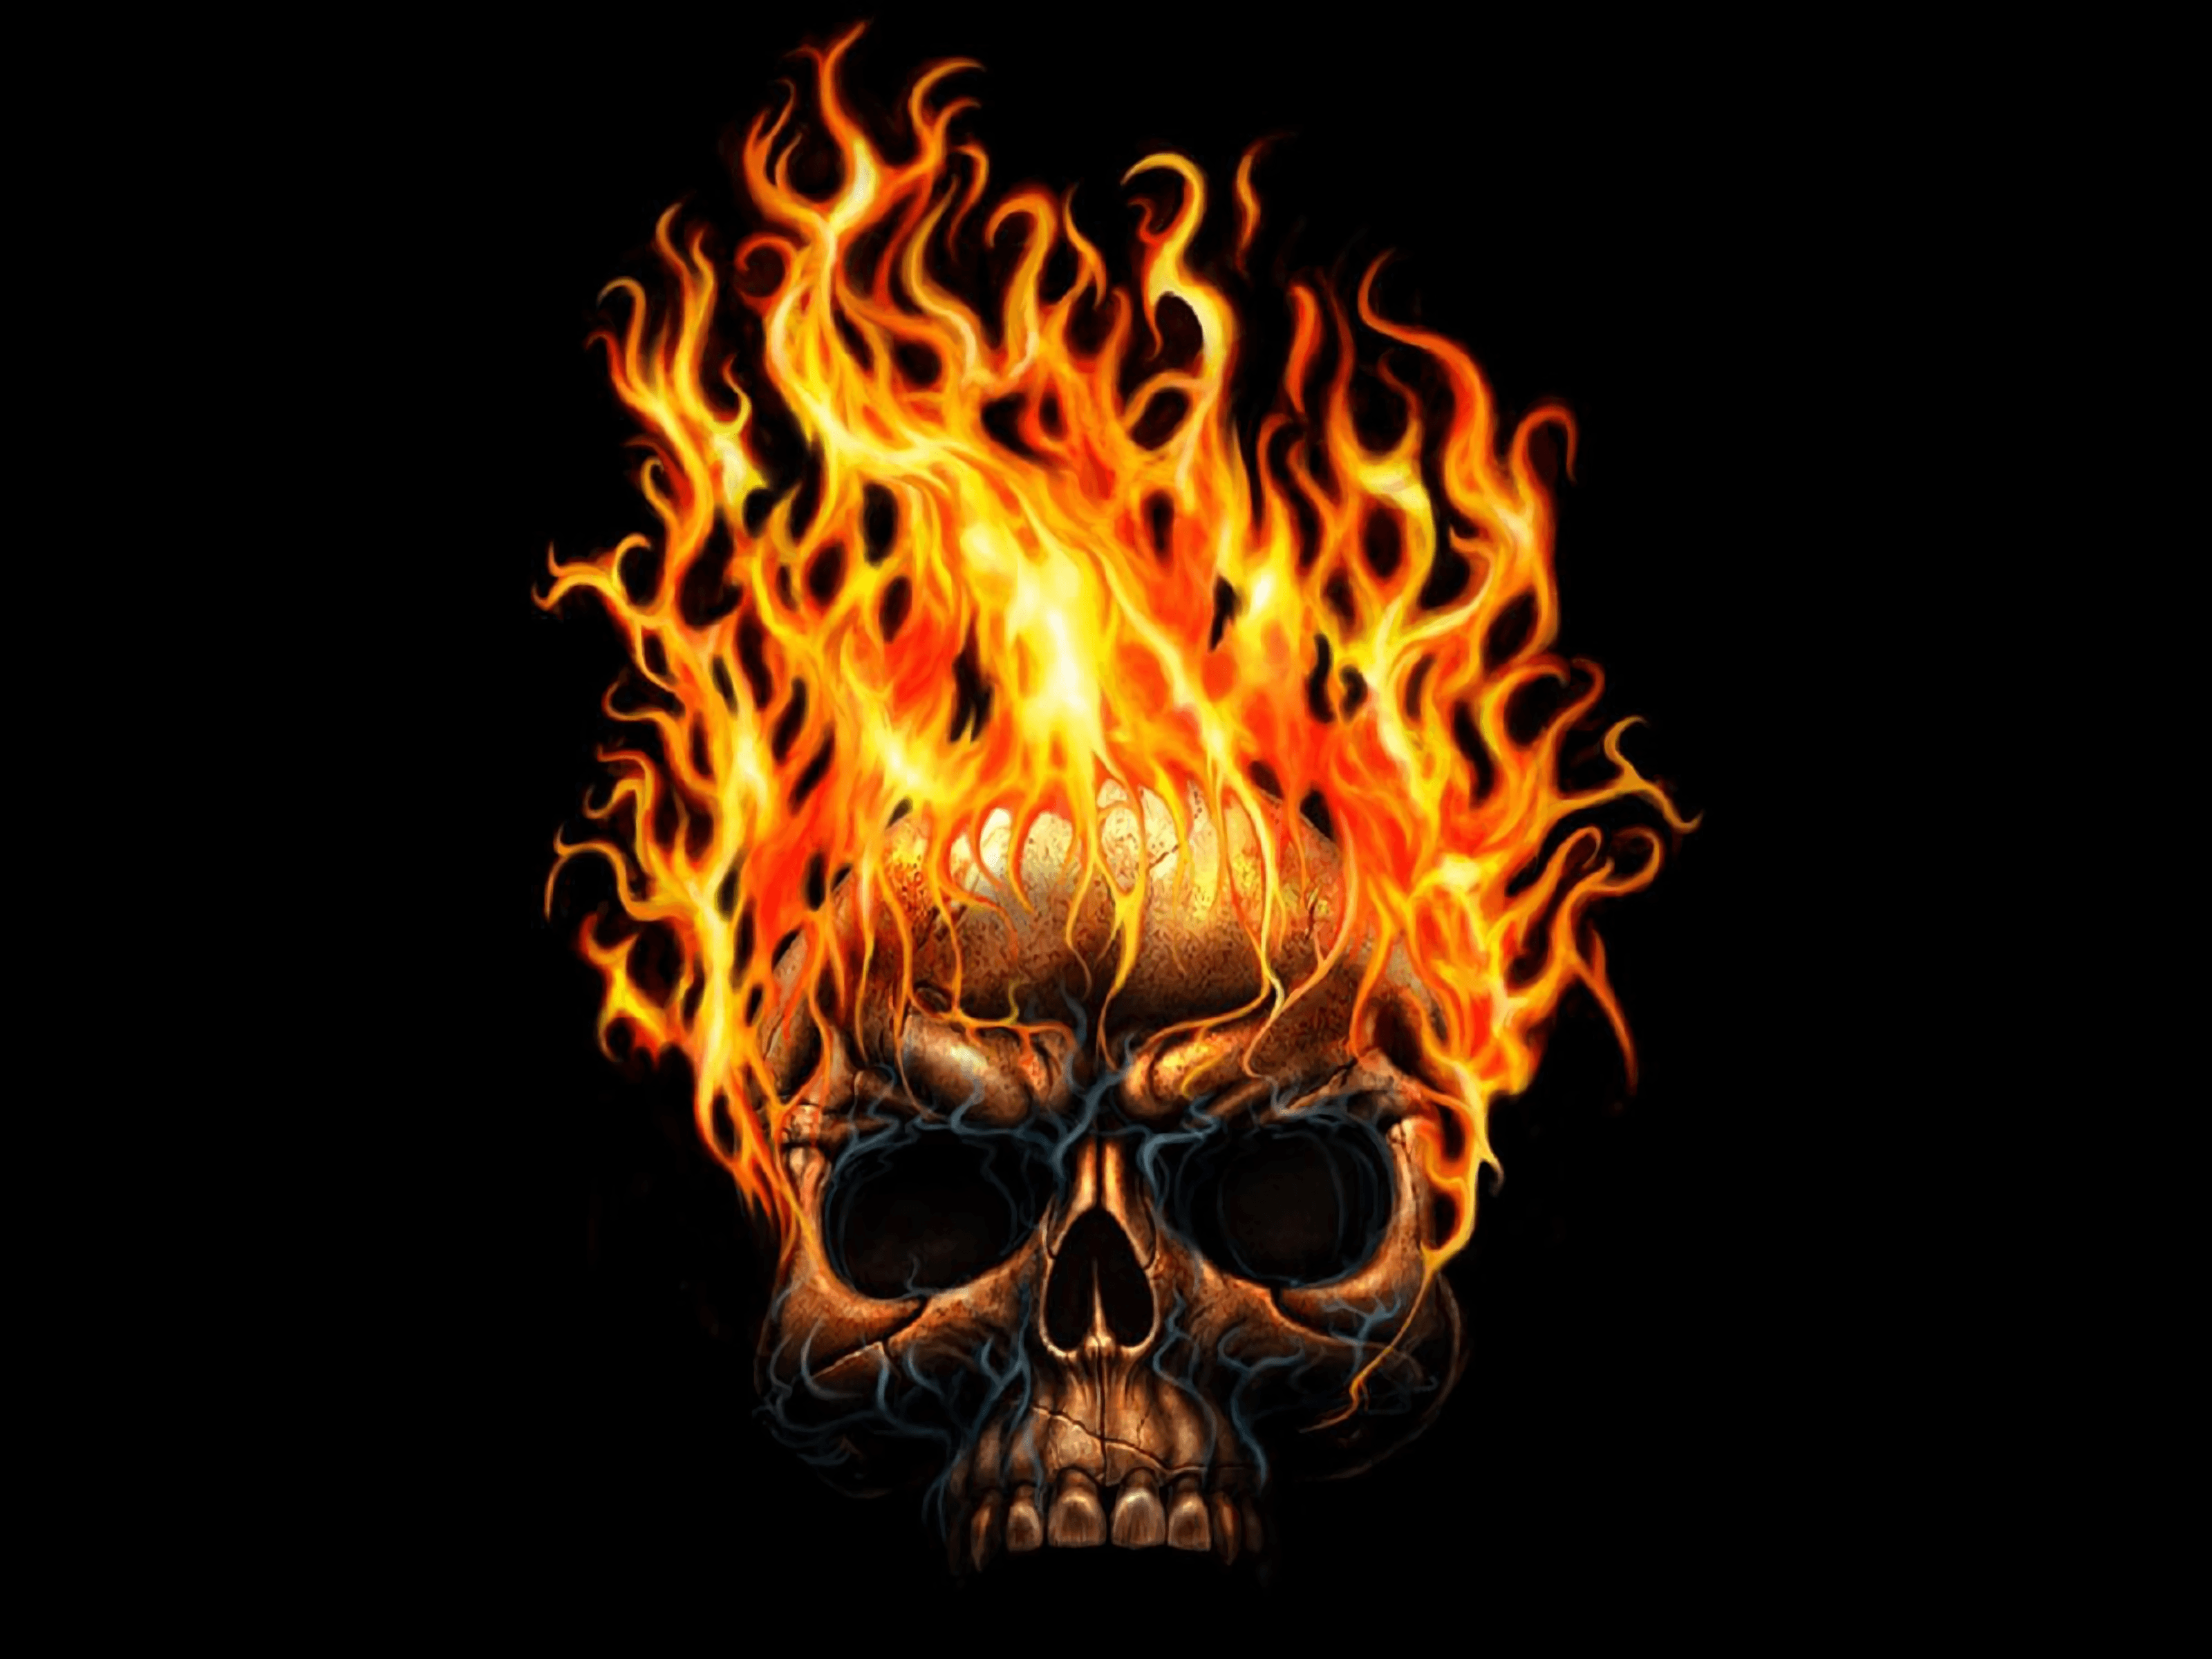 3200x2400 303 Flame HD Wallpapers | Background Images - Wallpaper Abyss